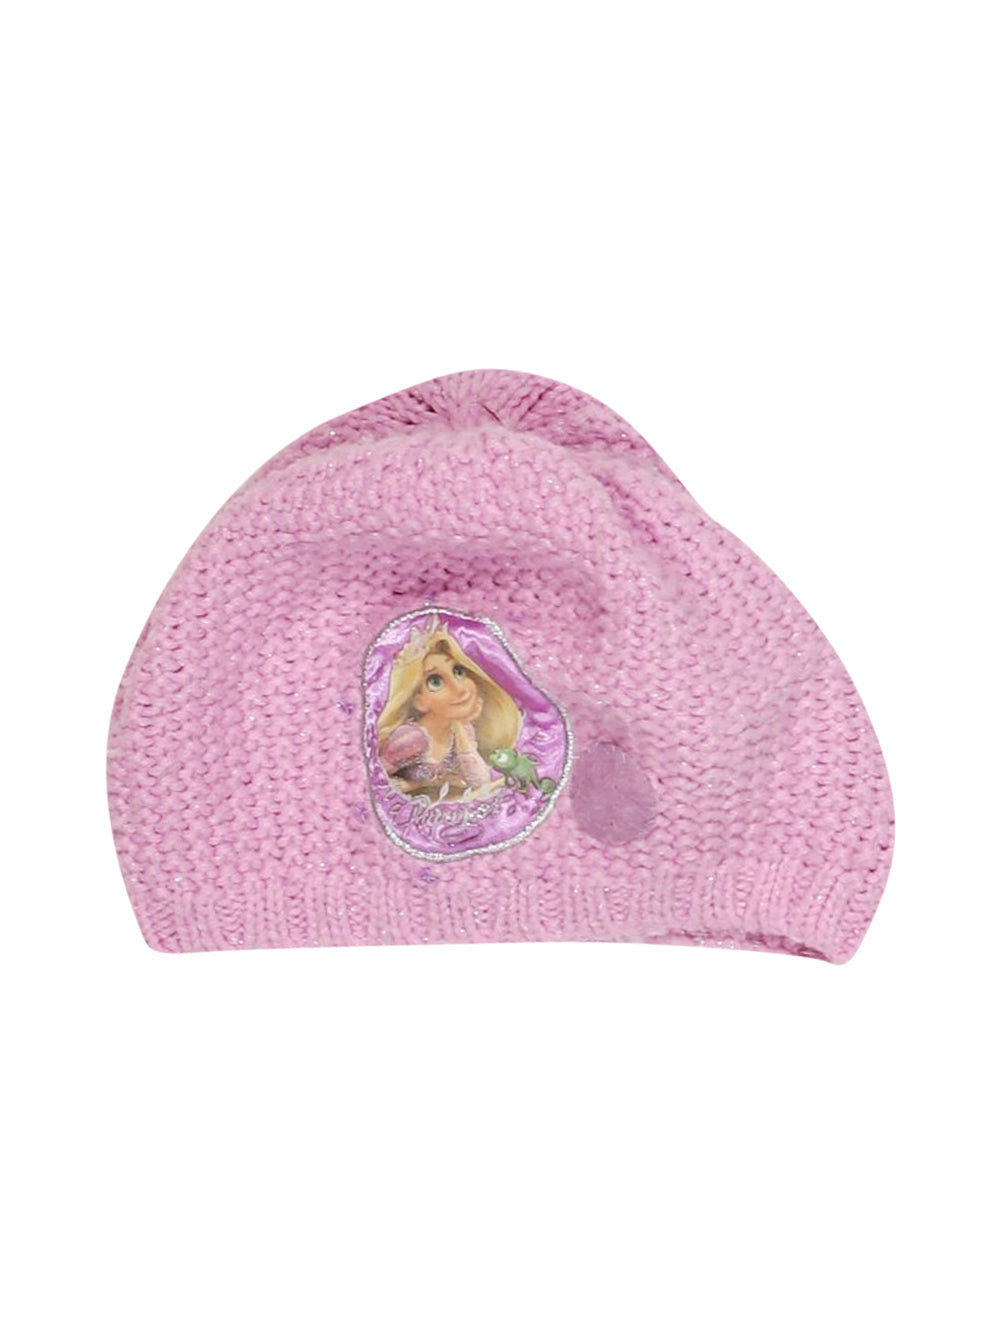 Front photo of Preloved Disney Pink Girl's hat - size 4-5 yrs